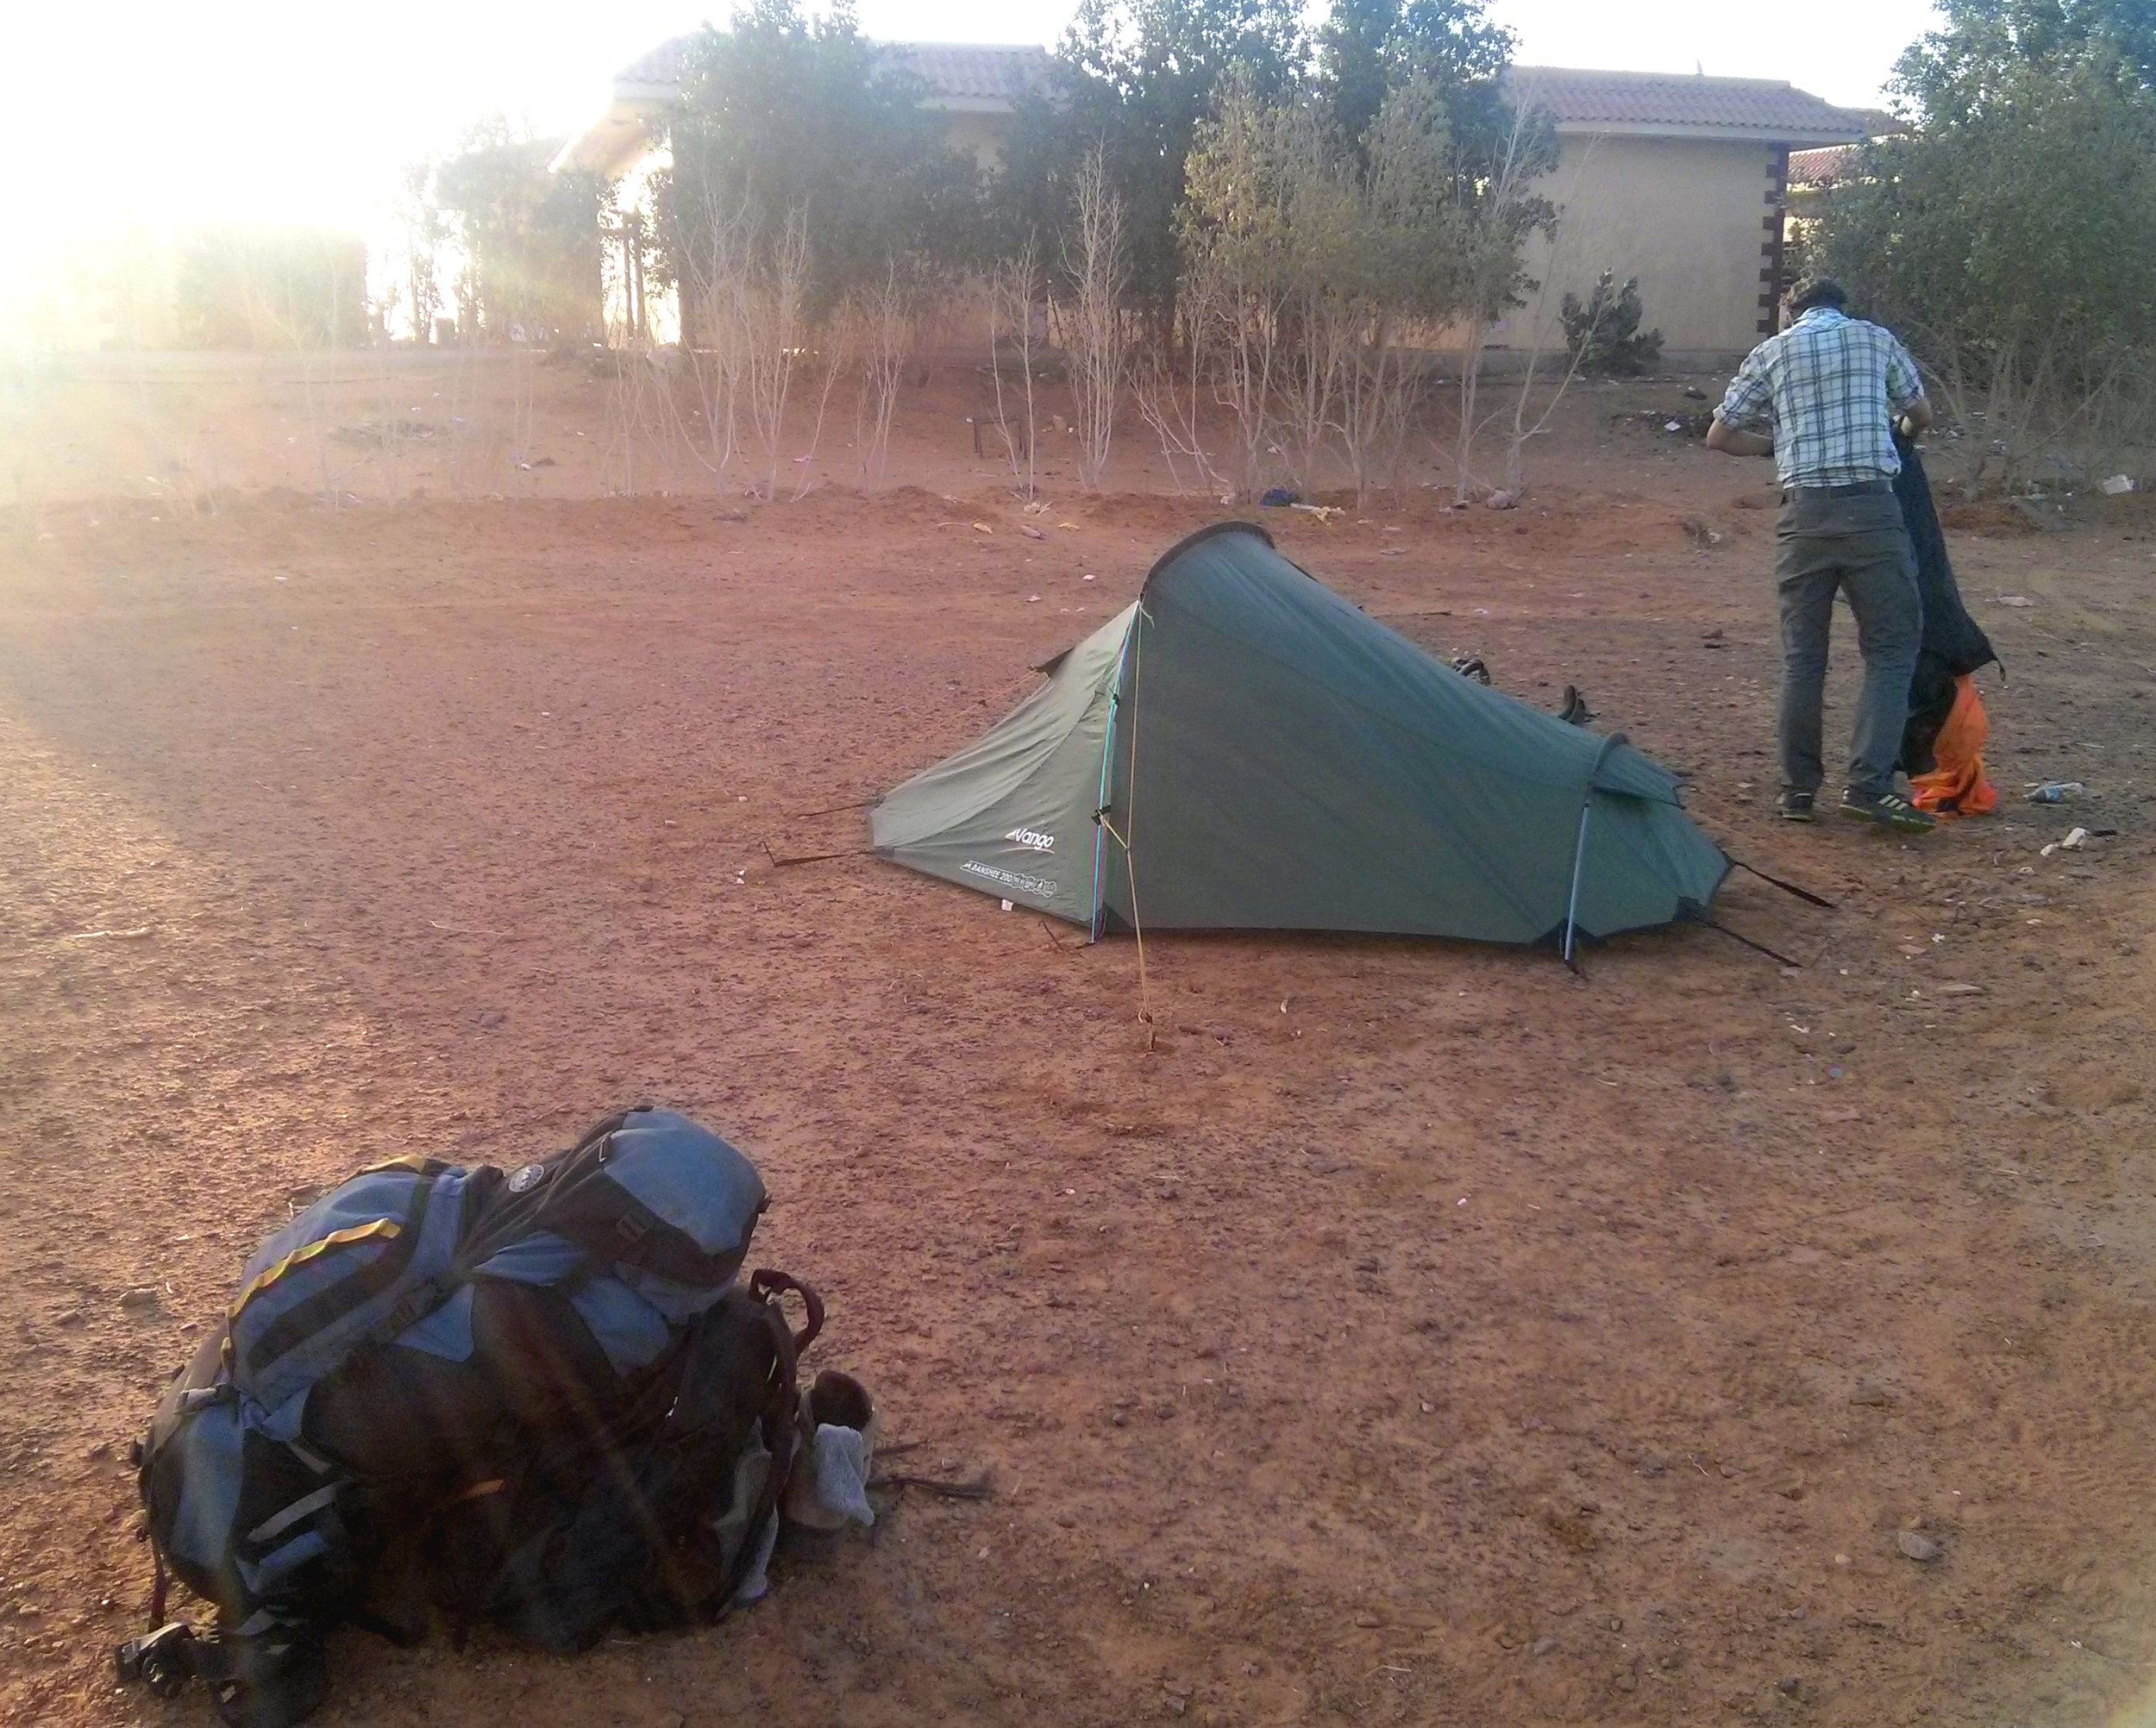 Certainly not the most glamorous camp spots, but undeniably convenient given the circumstances…